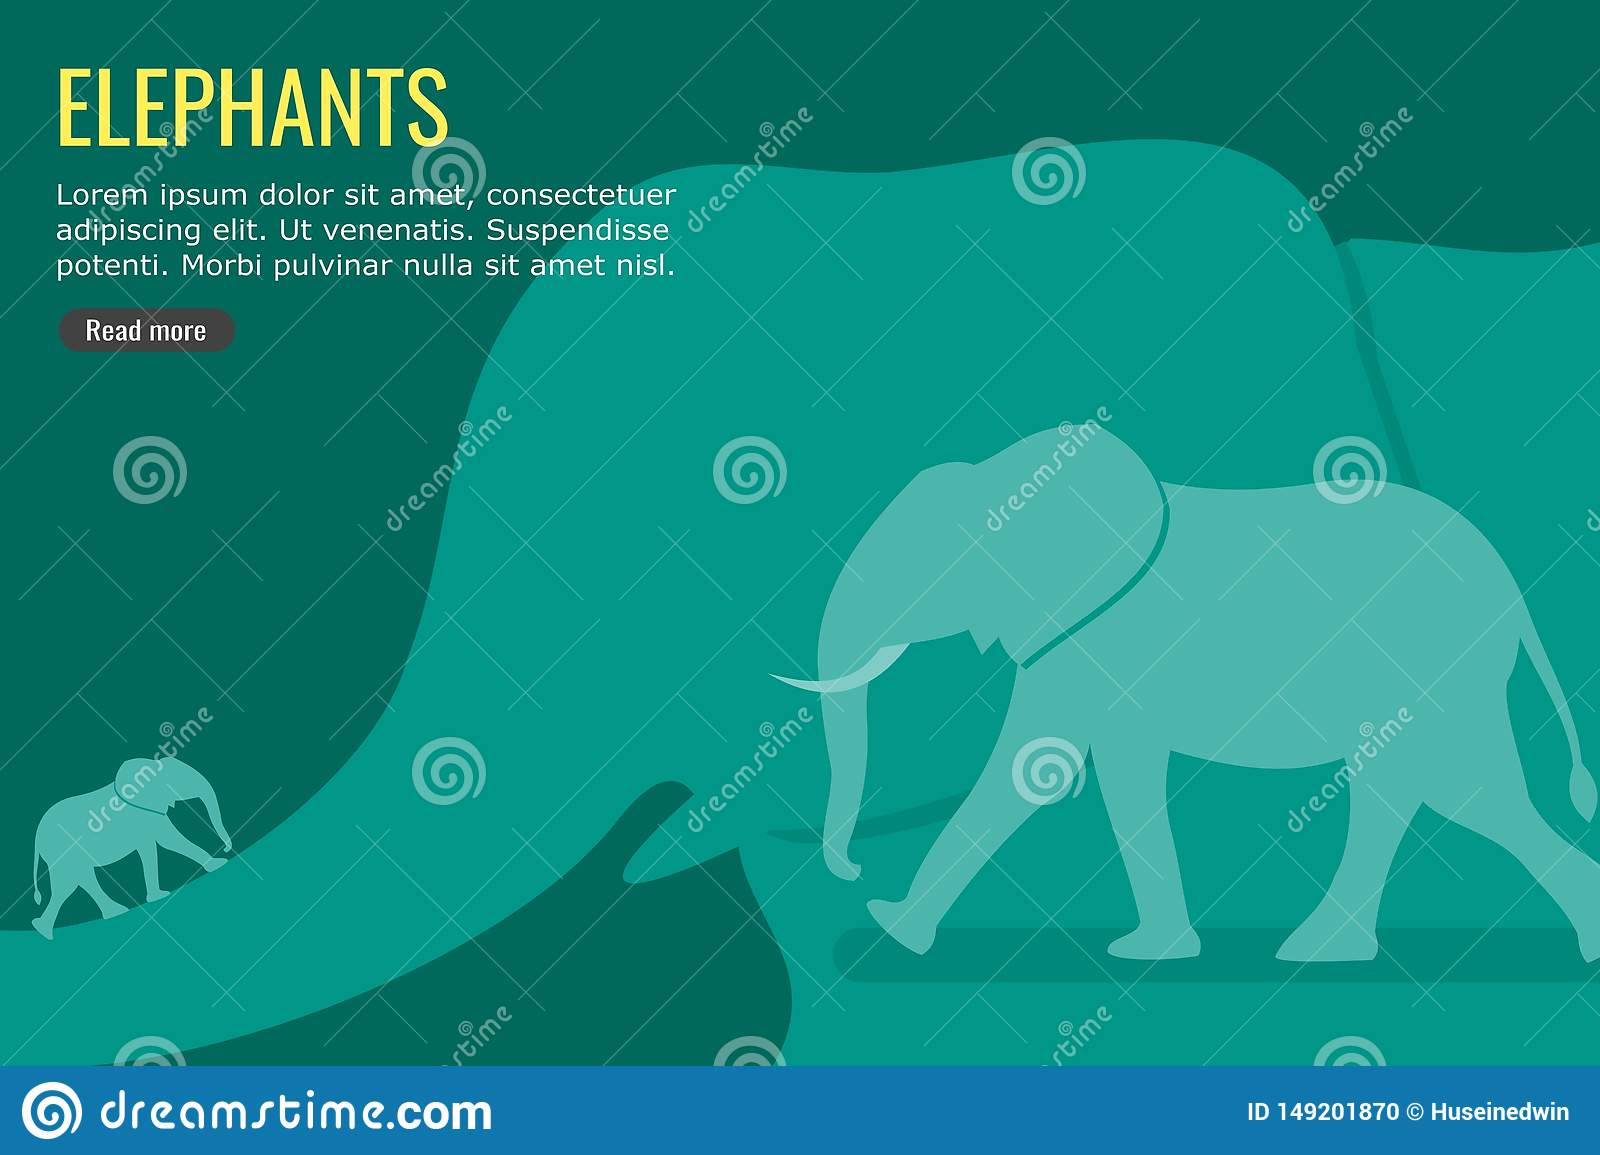 Elephant Vector and Background Info-graphic Design